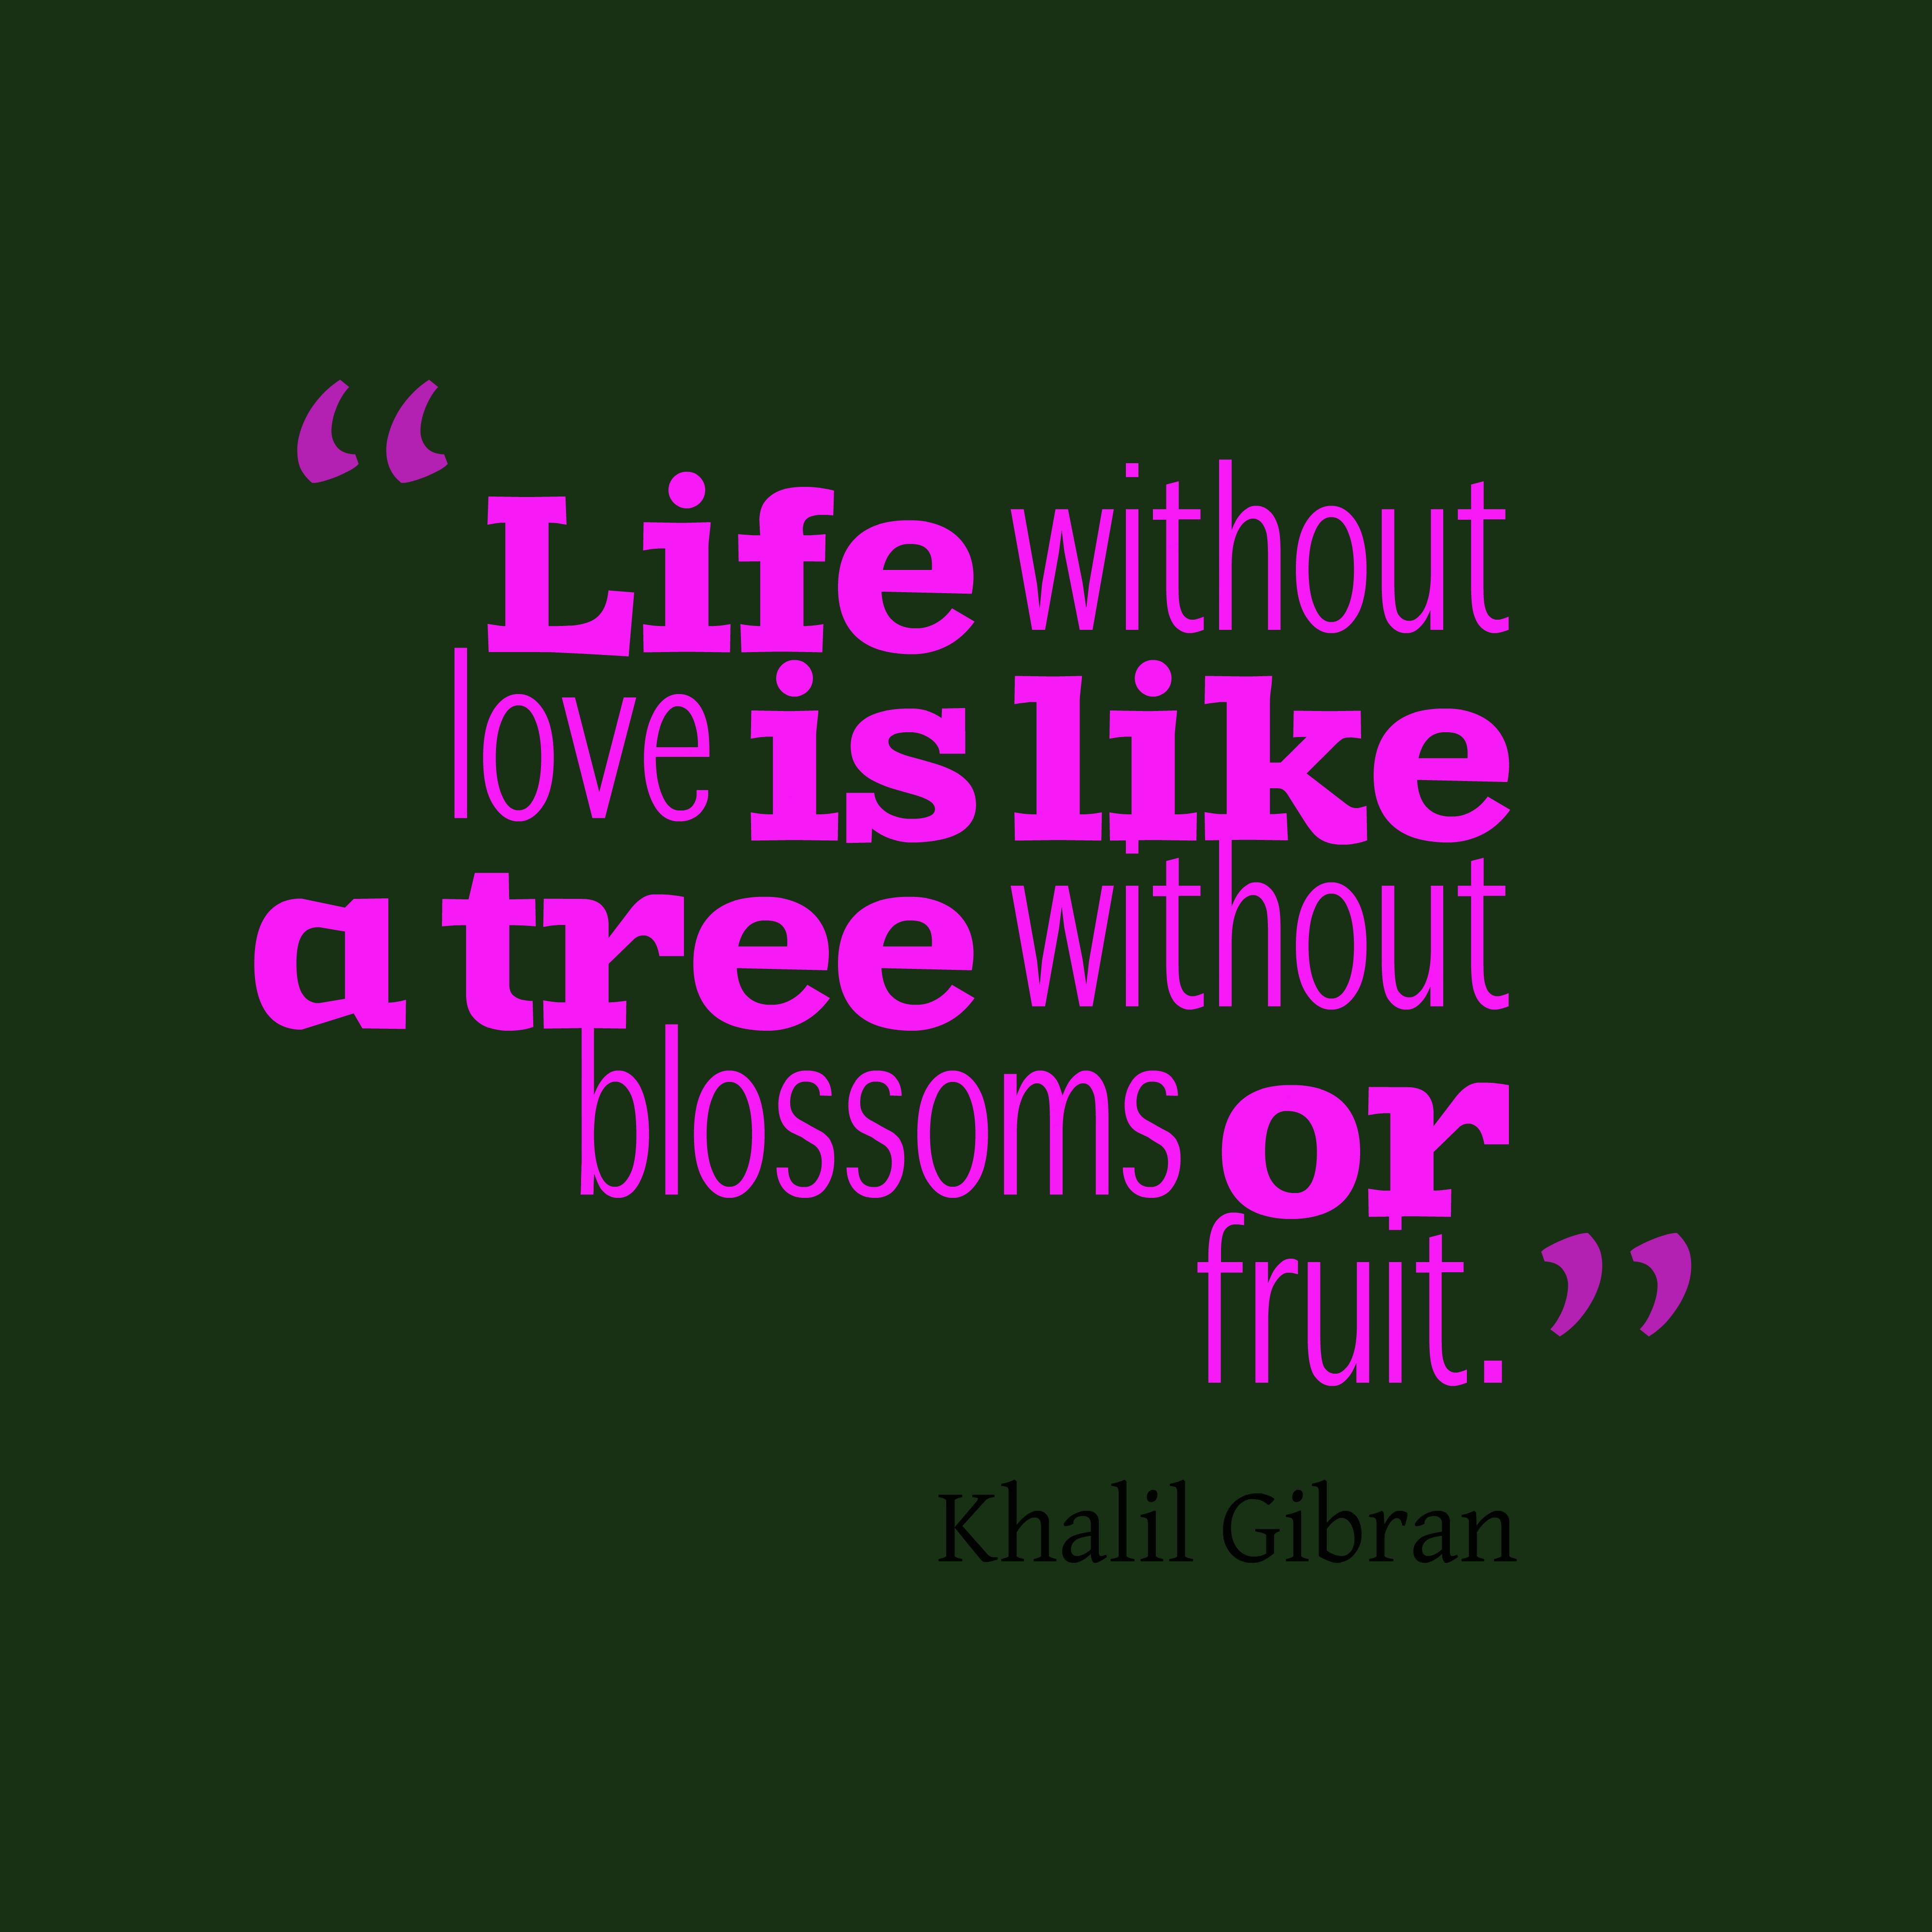 Life Quotes Love: 20 Life Without Love Quotes And Sayings Gallery